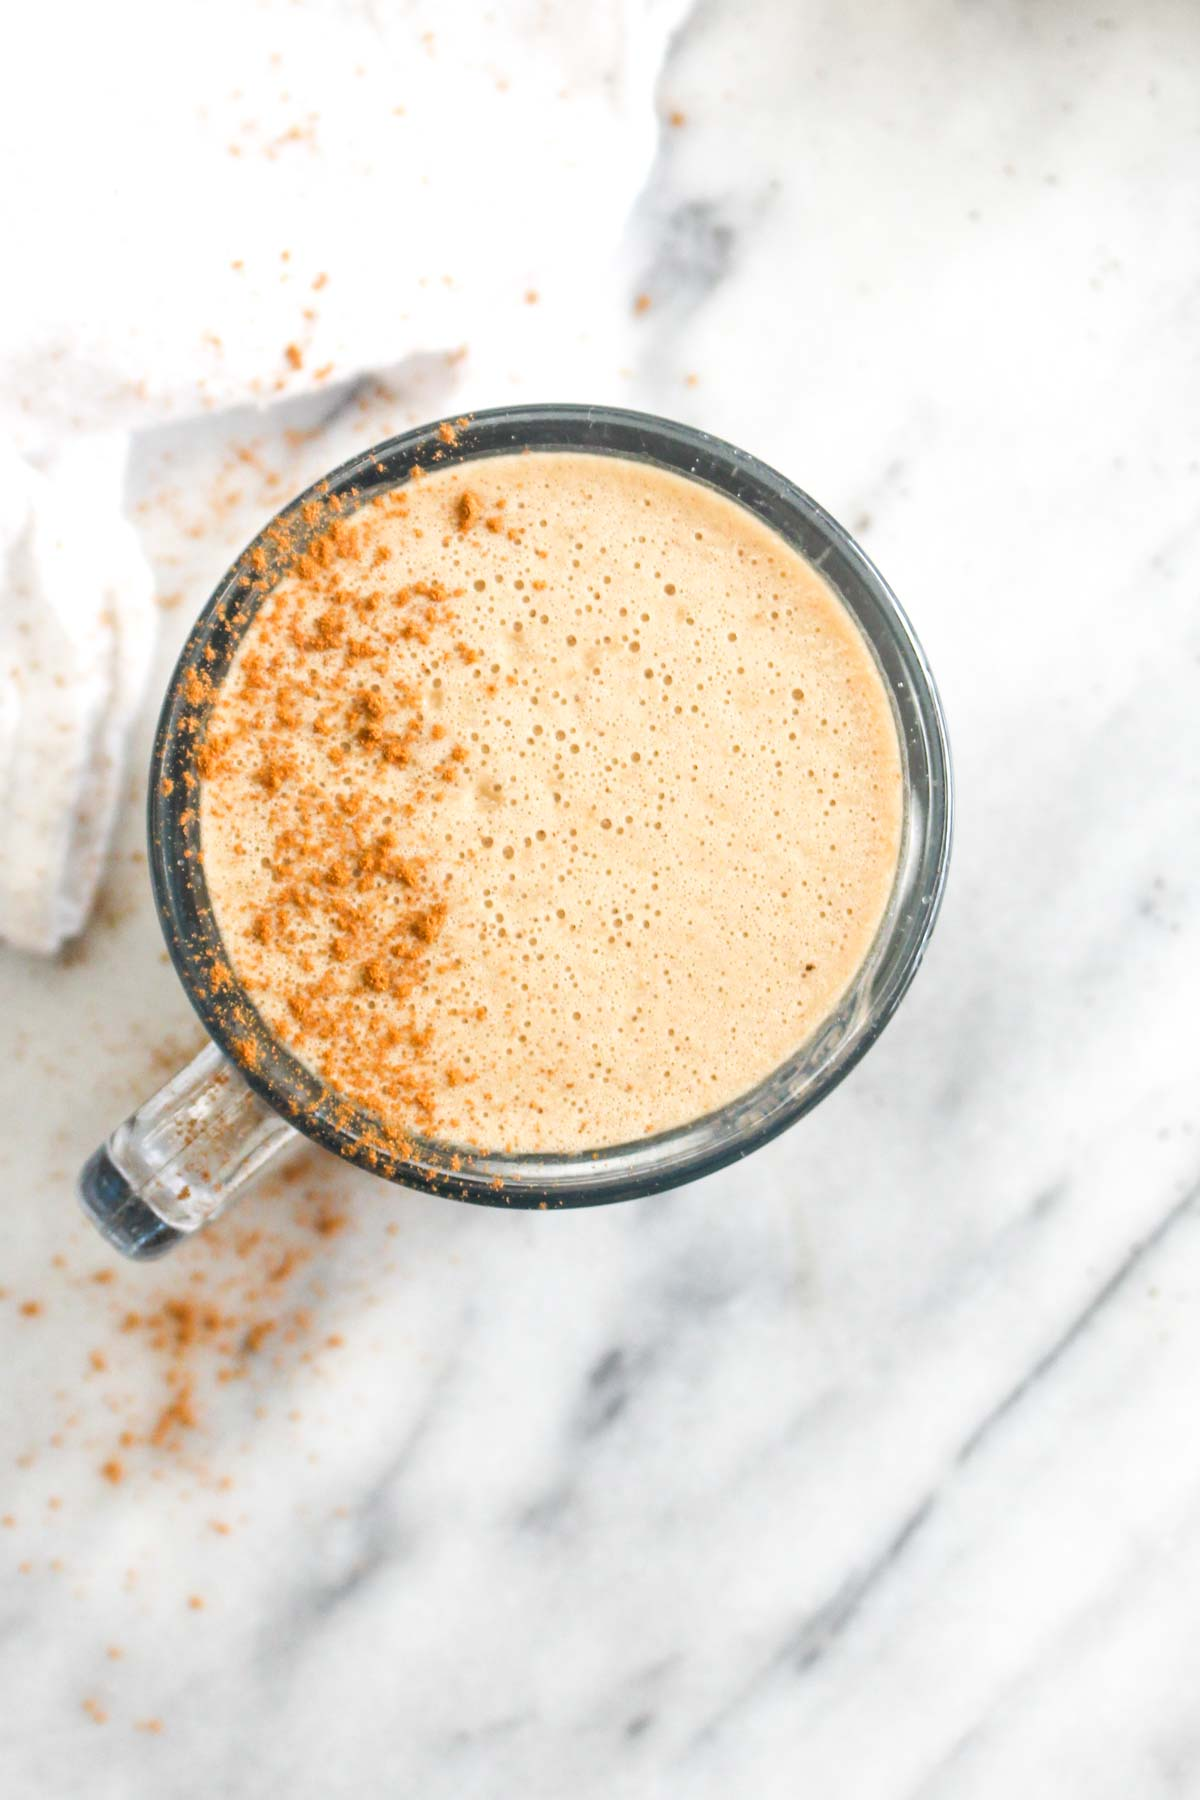 This Vegan Oil Free Bulletproof Coffee recipe will give you loads of energy to start your day! It is made a secret whole foods ingredient that gives you healthy fats without empty calories | CatchingSeeds.com